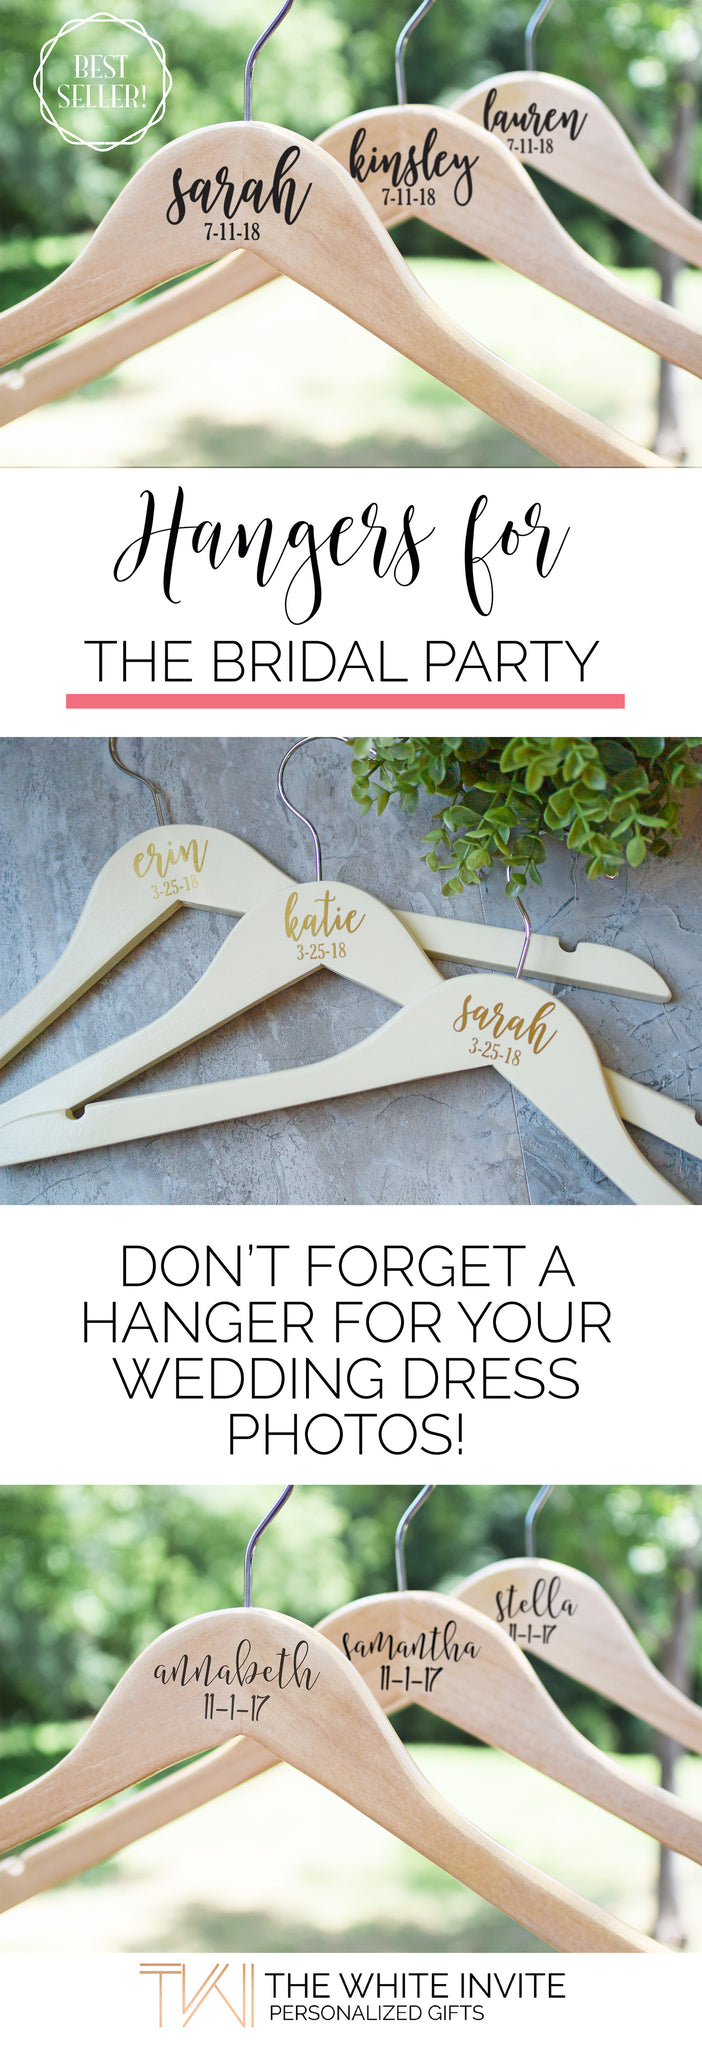 Wedding Hangers for Bridal Party, Bridesmaid Wedding Hangers, Wedding Dress Hanger